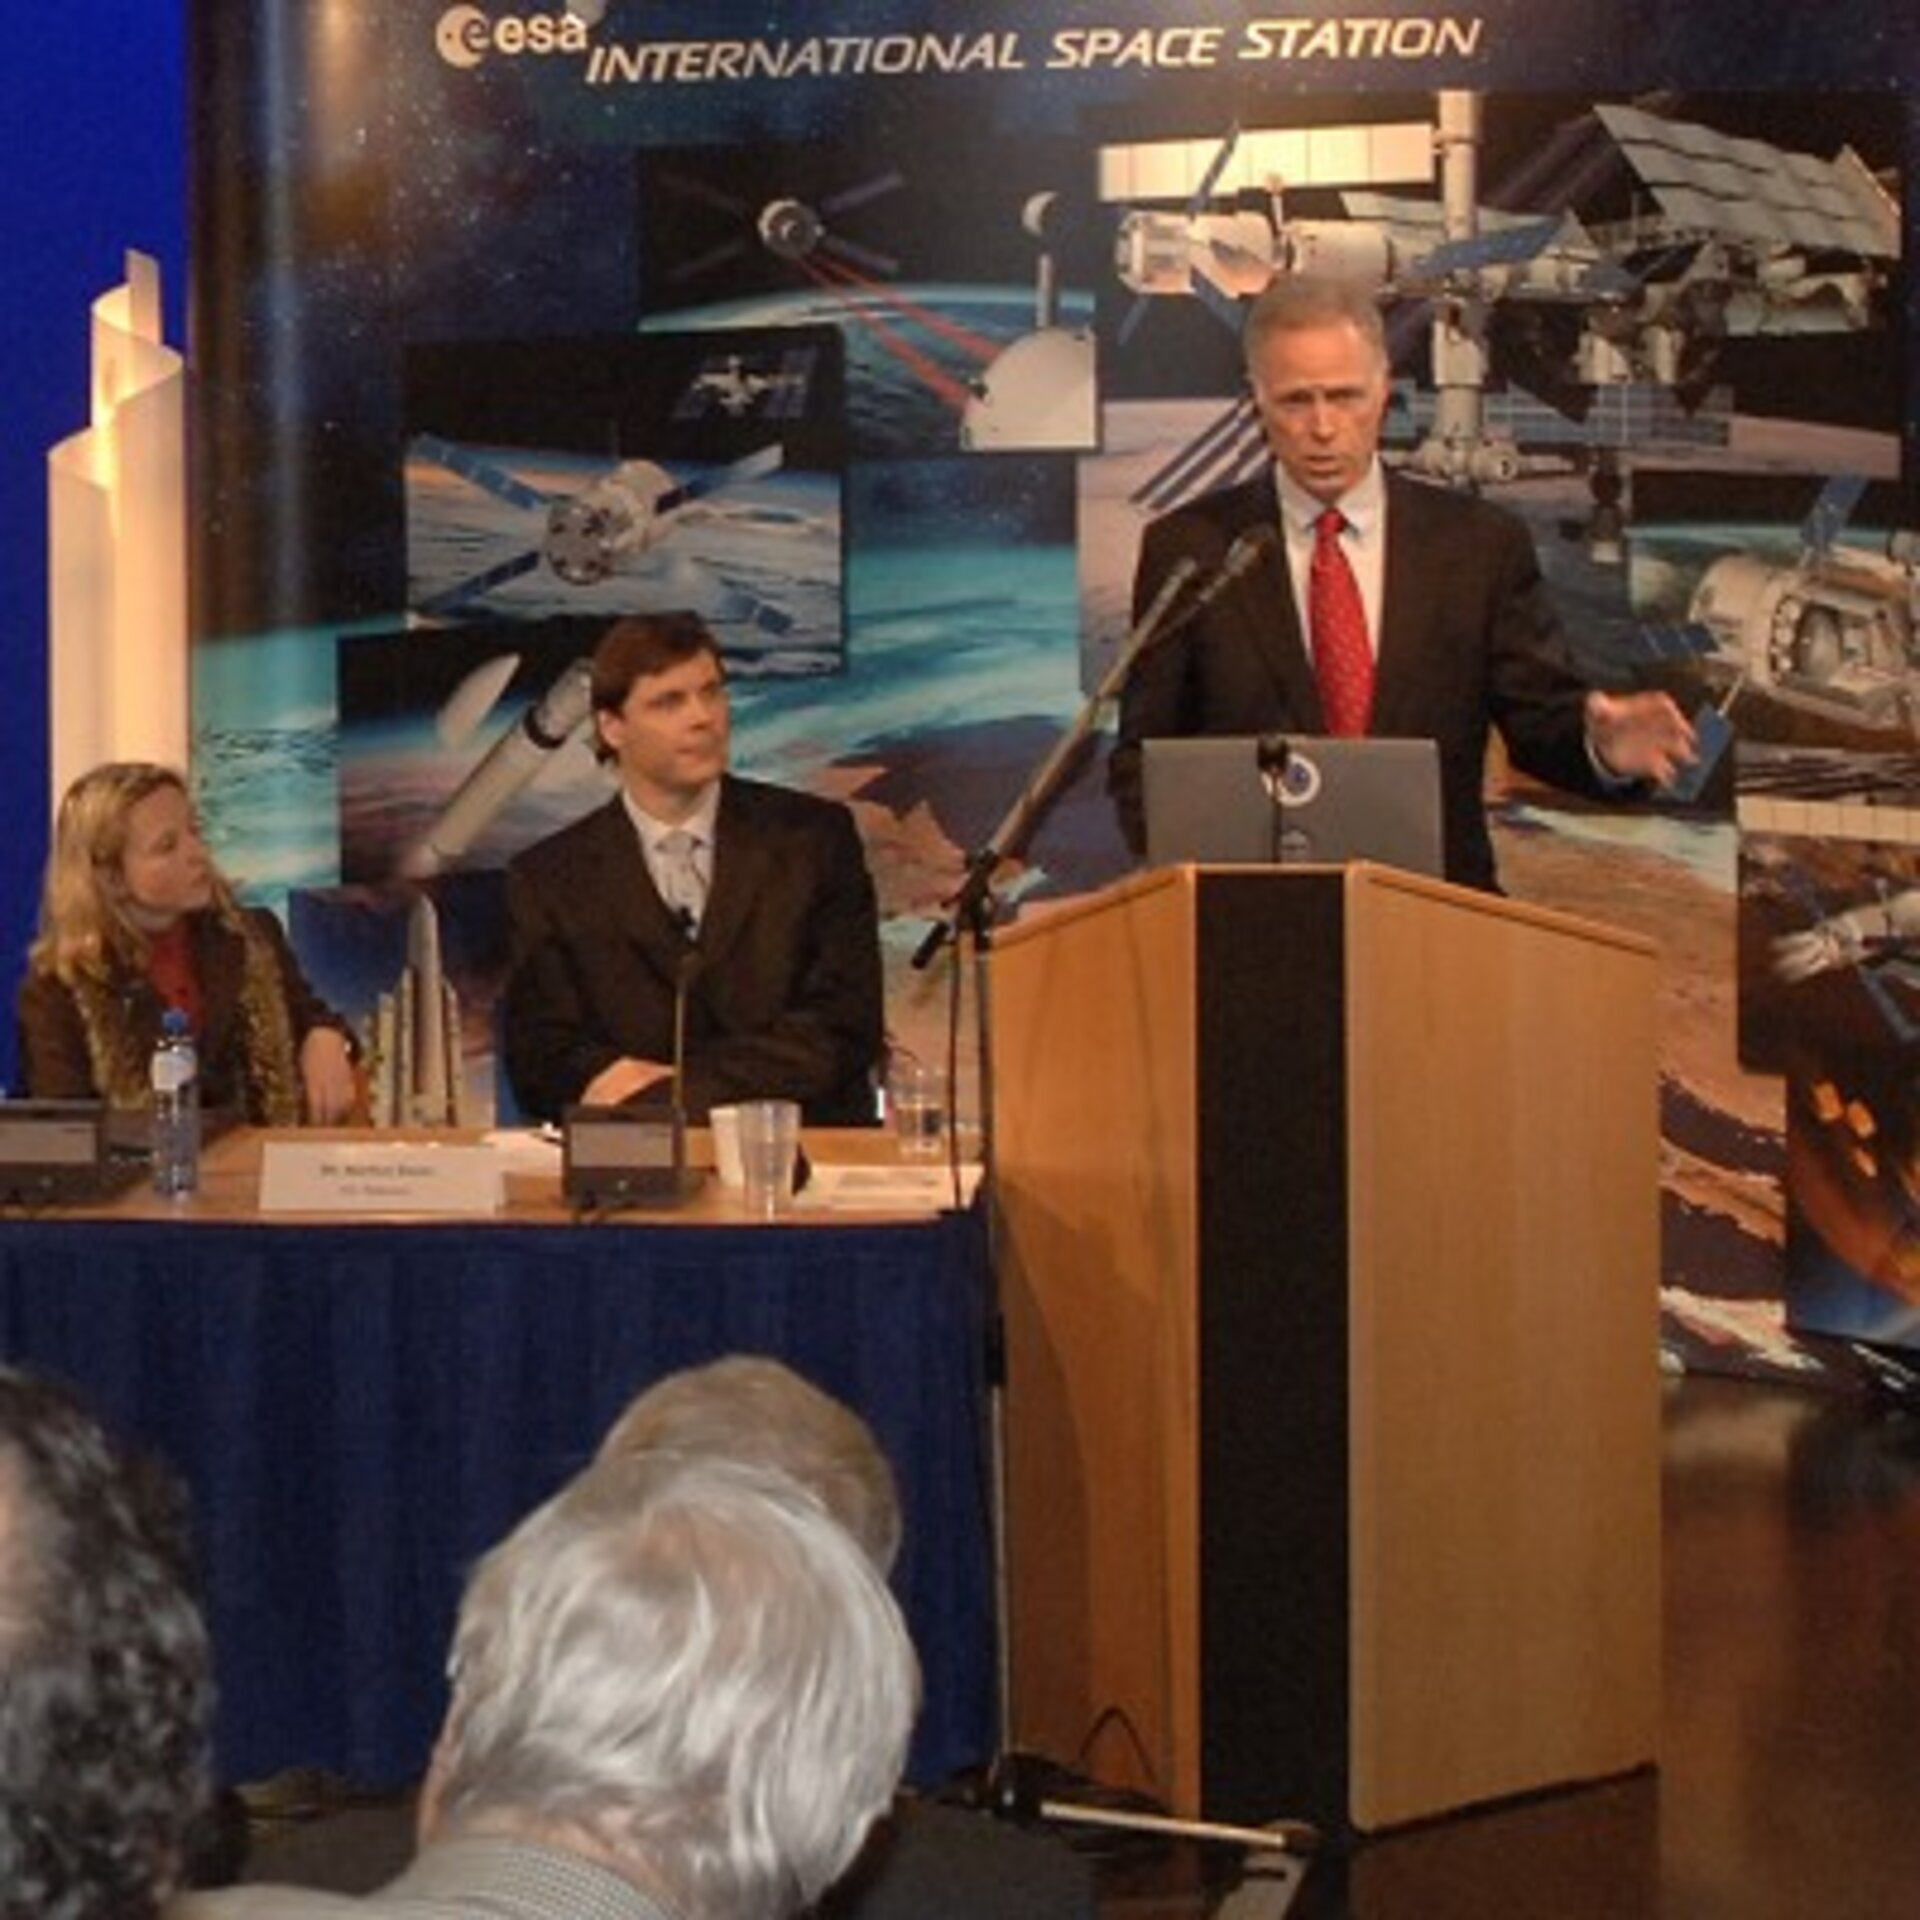 Dr Olsen was a keynote speaker at the ISS Business Club's Network Meeting